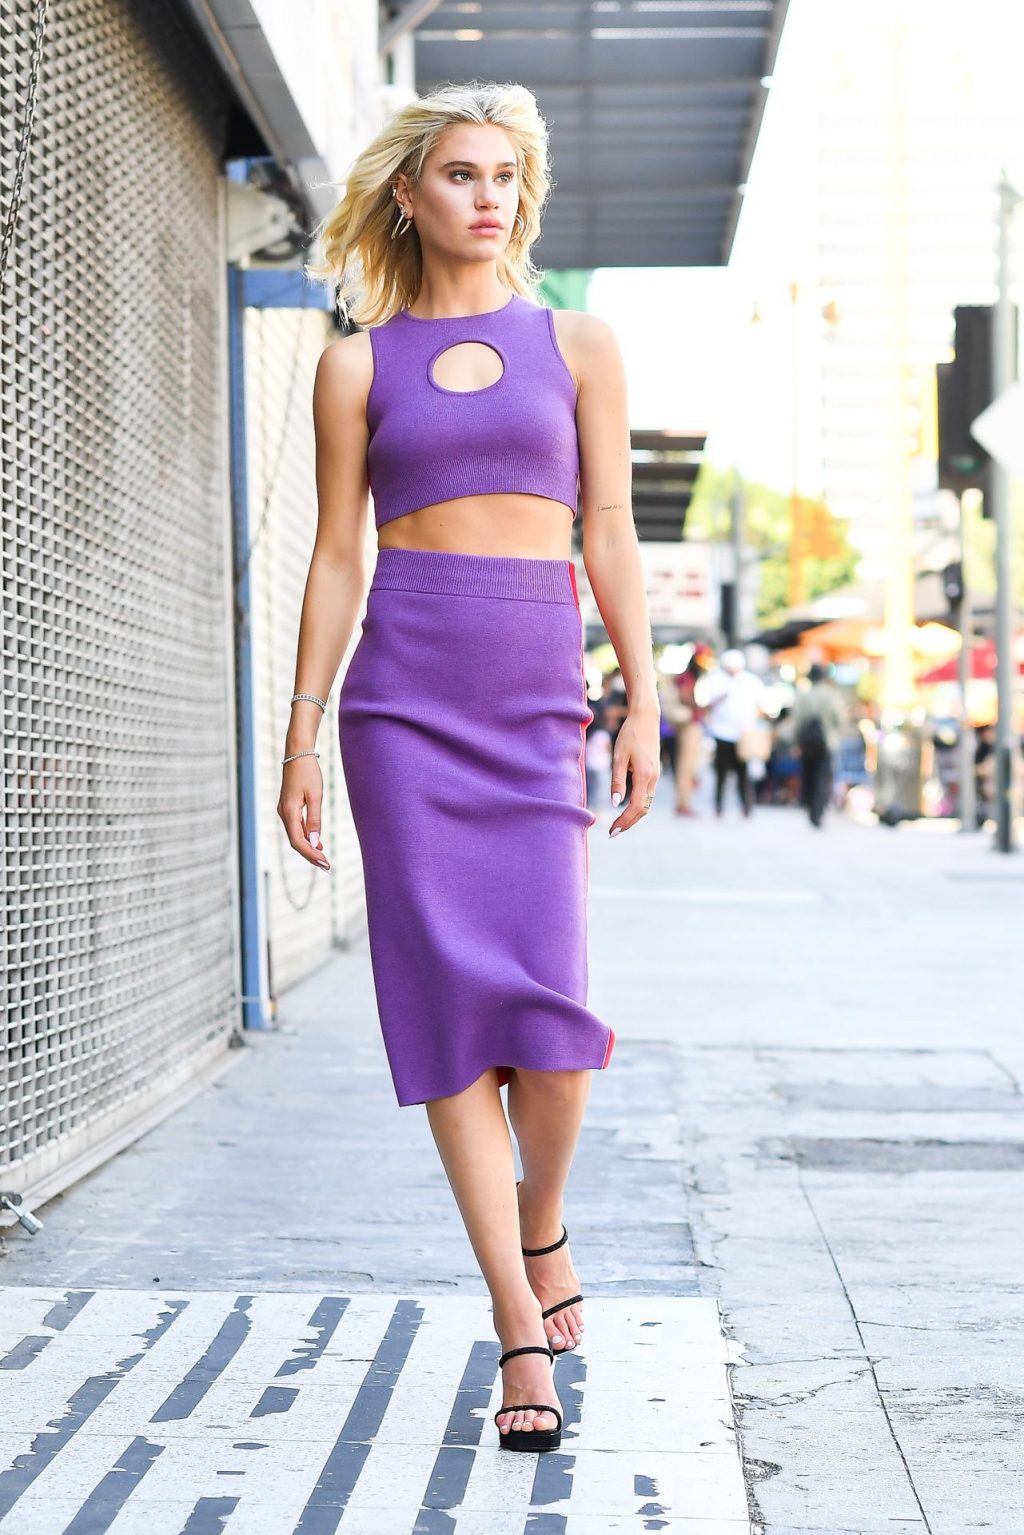 Meredith Mickelson is Seen Doing a Shoot in LA (19 Photos)